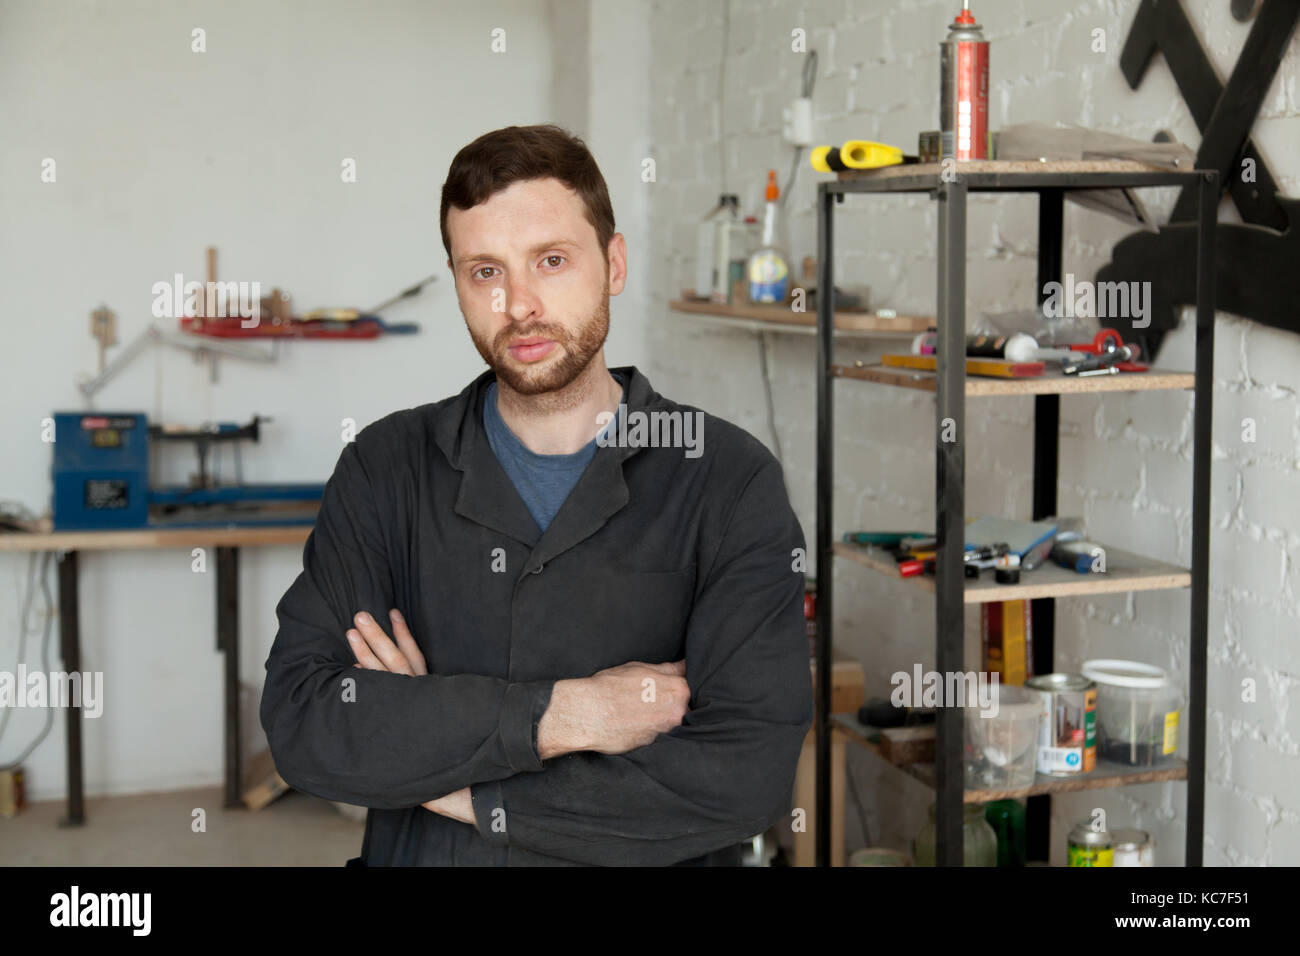 Portrait of serious young handyman standing in own workshop inte - Stock Image